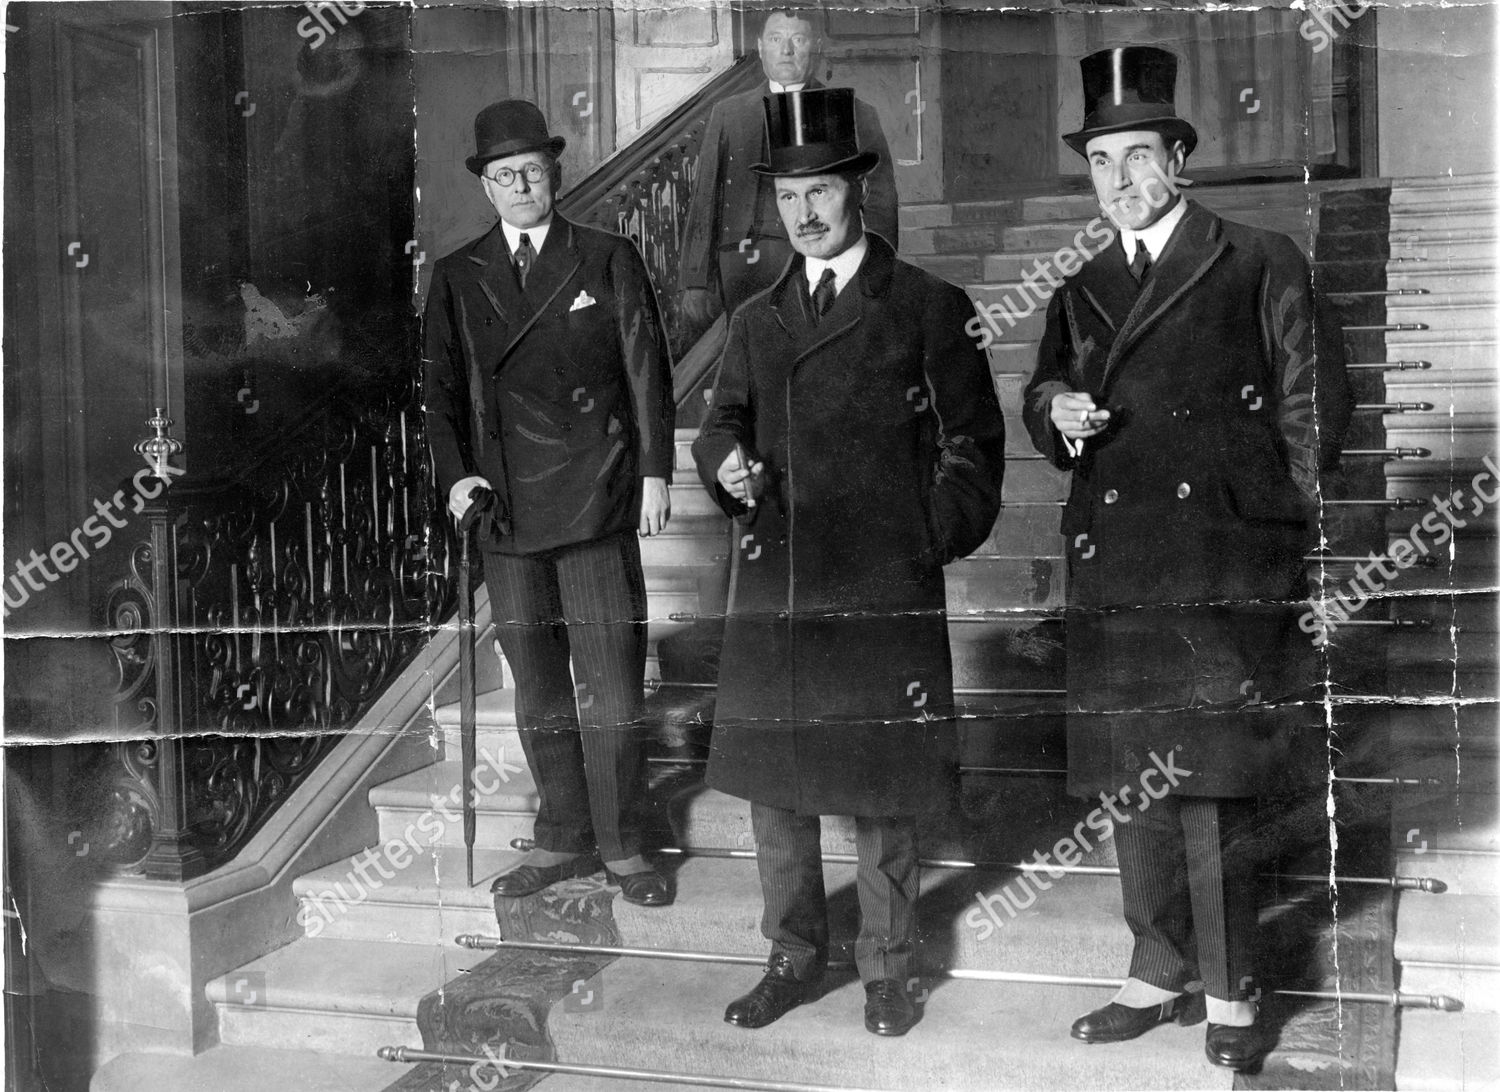 The Rt Hon Andrew Bonar Law (died October 1923) Conservative Party Prime Minister From 23 October 1922 Until 22 May 1923. Bonar (centre) Is Pictured Leaving The Quai D'orsay Paris France With Sir Philip Lloyd-graeme President Of The Board Of Trade (